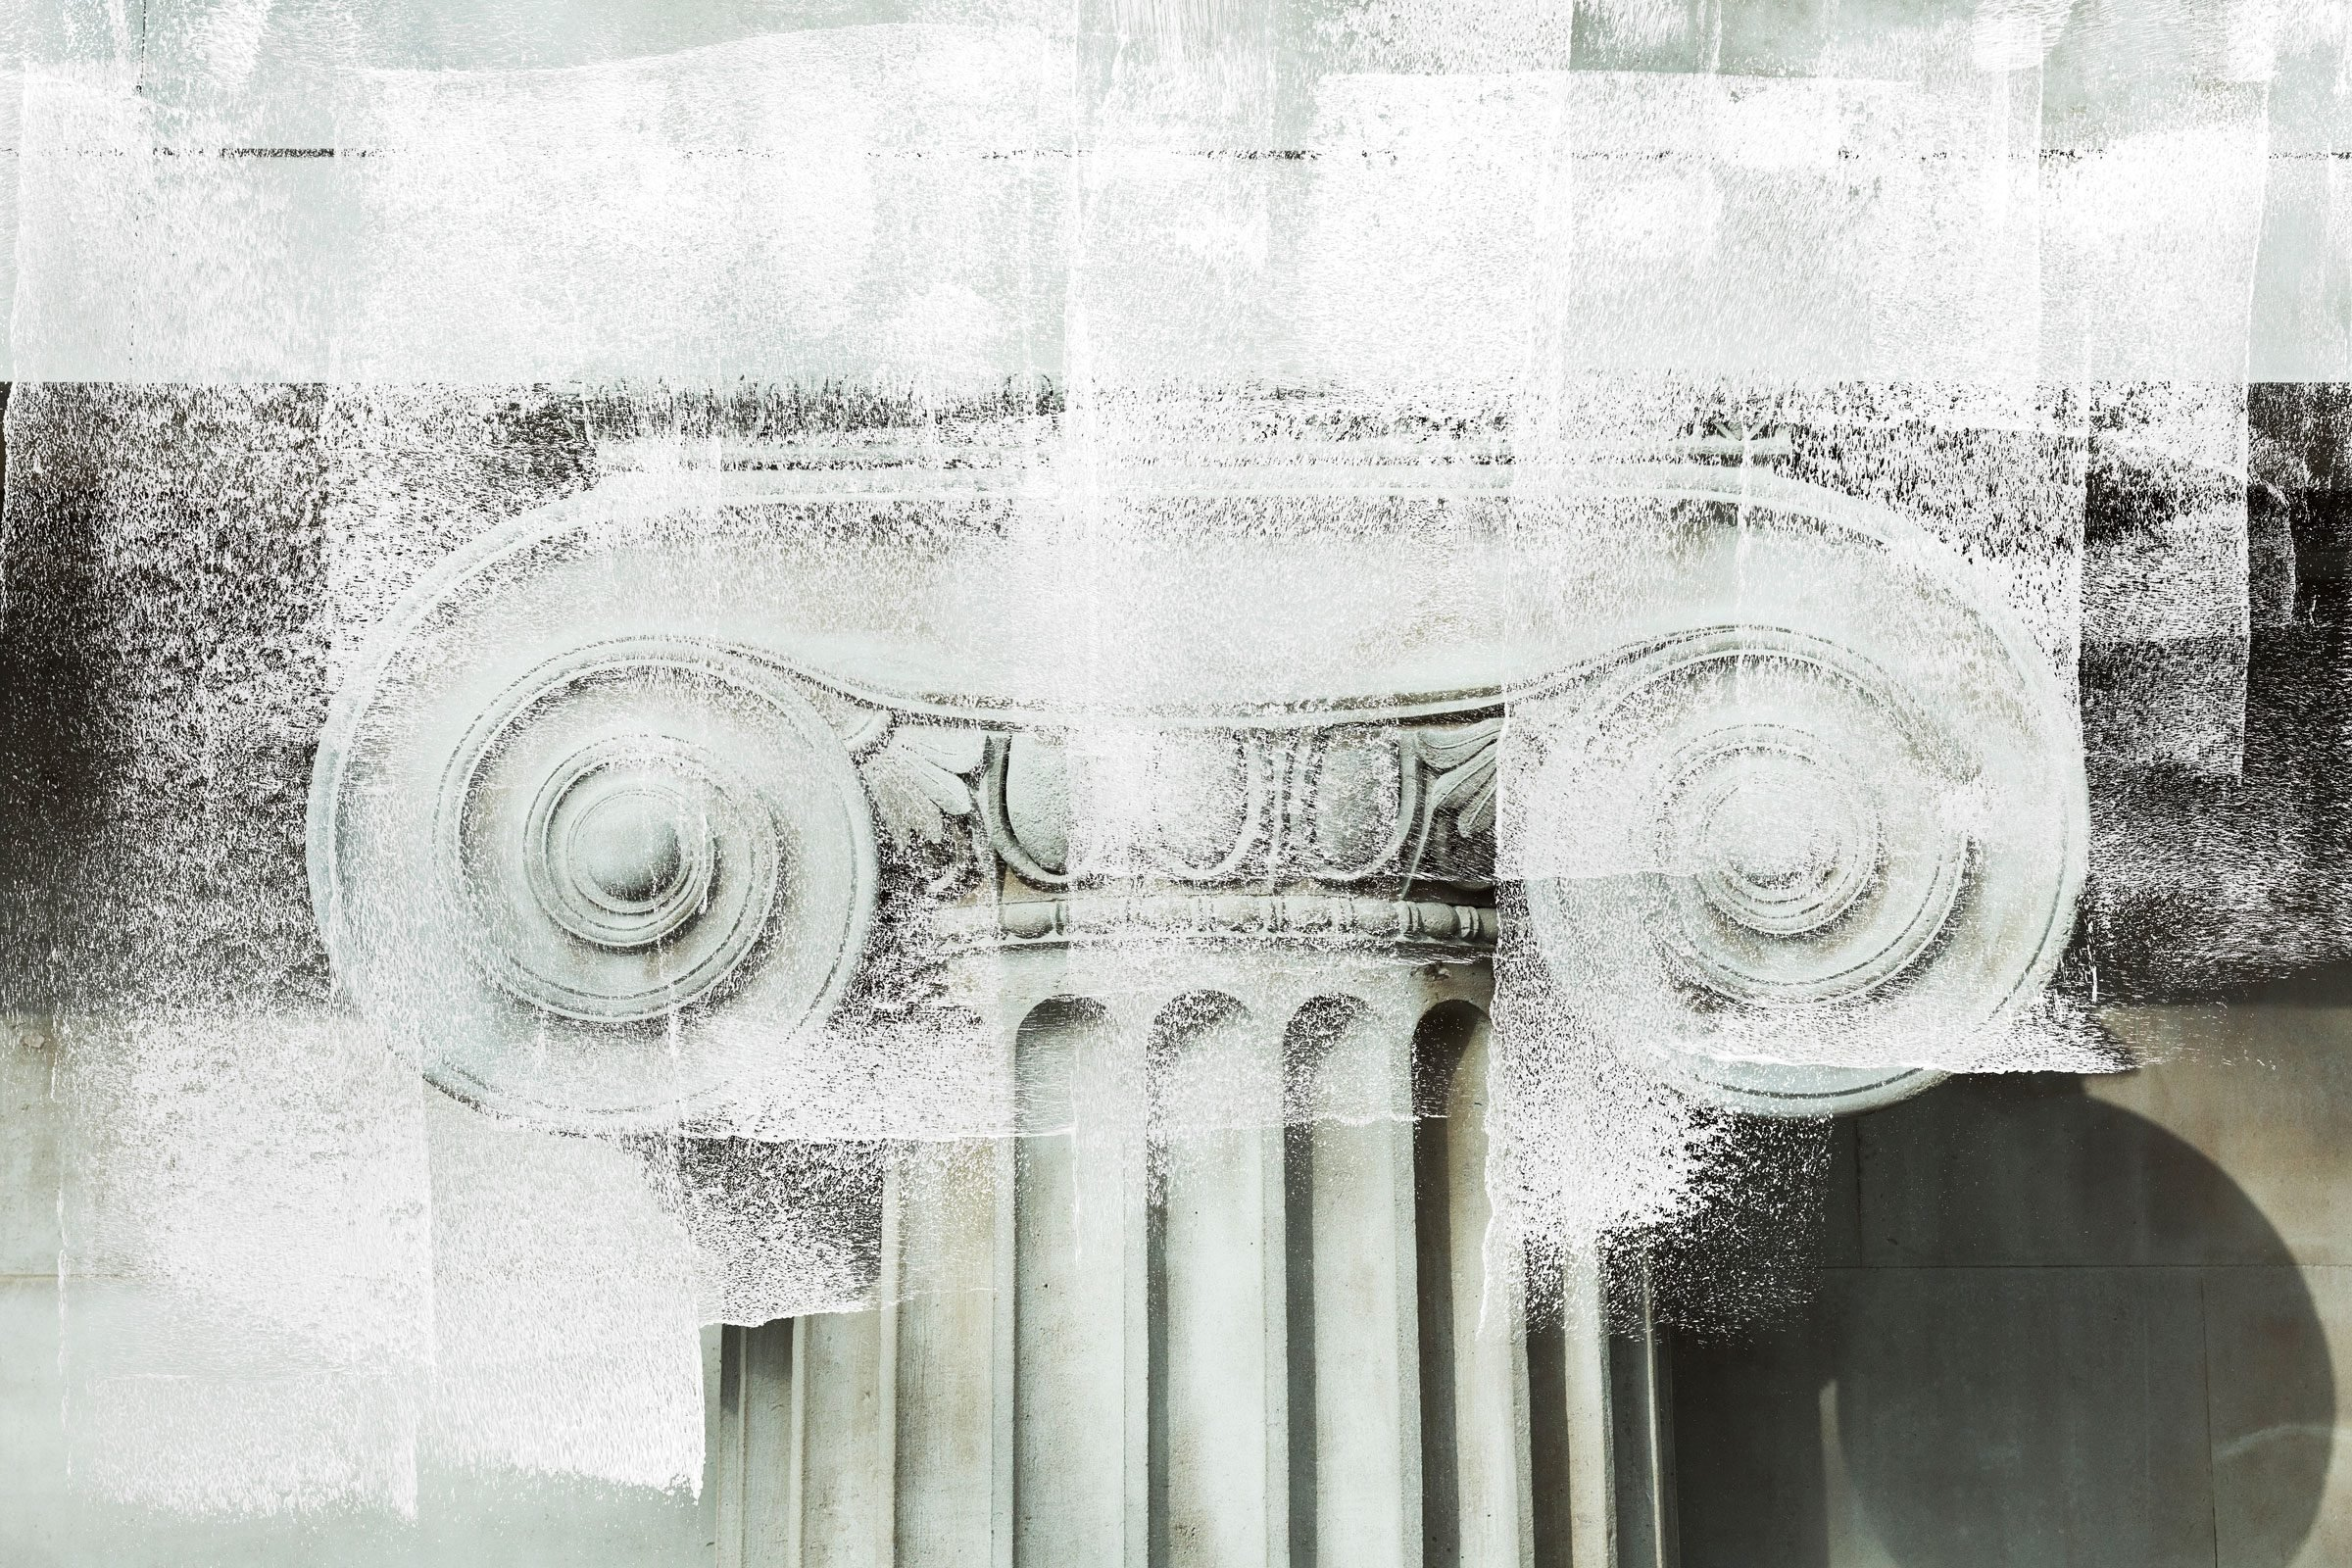 white paint overlay over a close up of details of a marble column